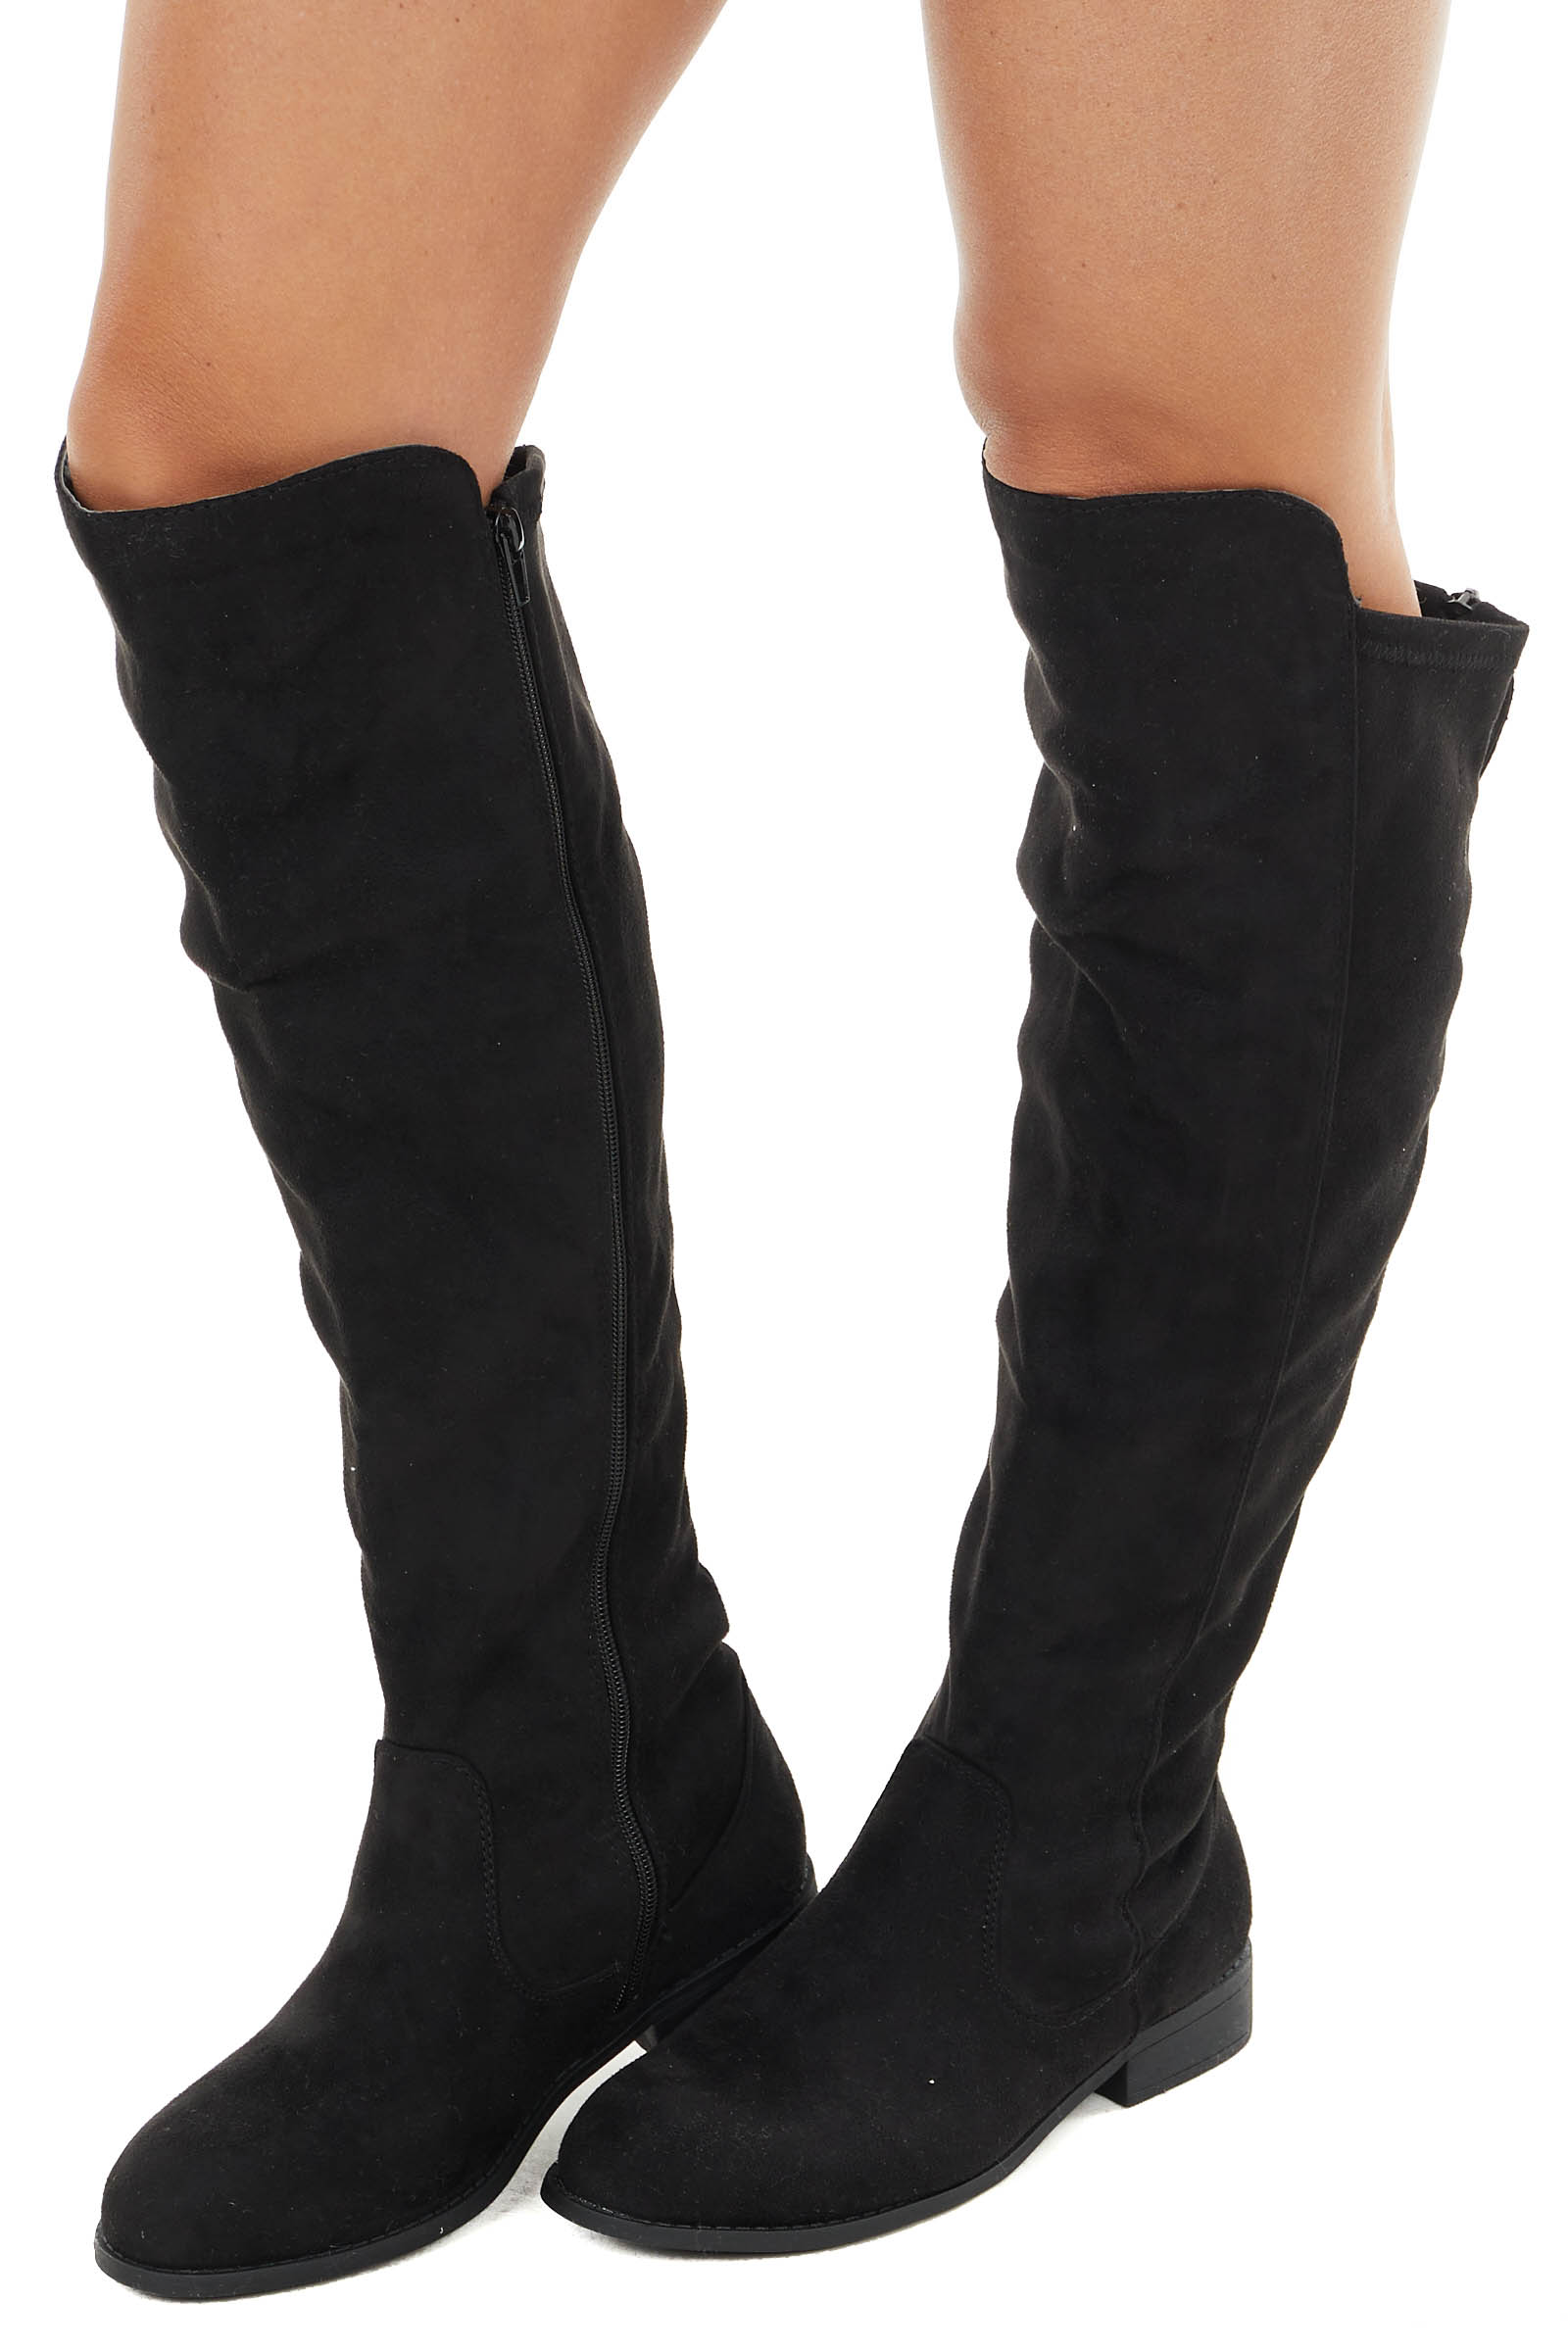 Black Faux Suede Knee High Zip Up Boots with Rounded Toe